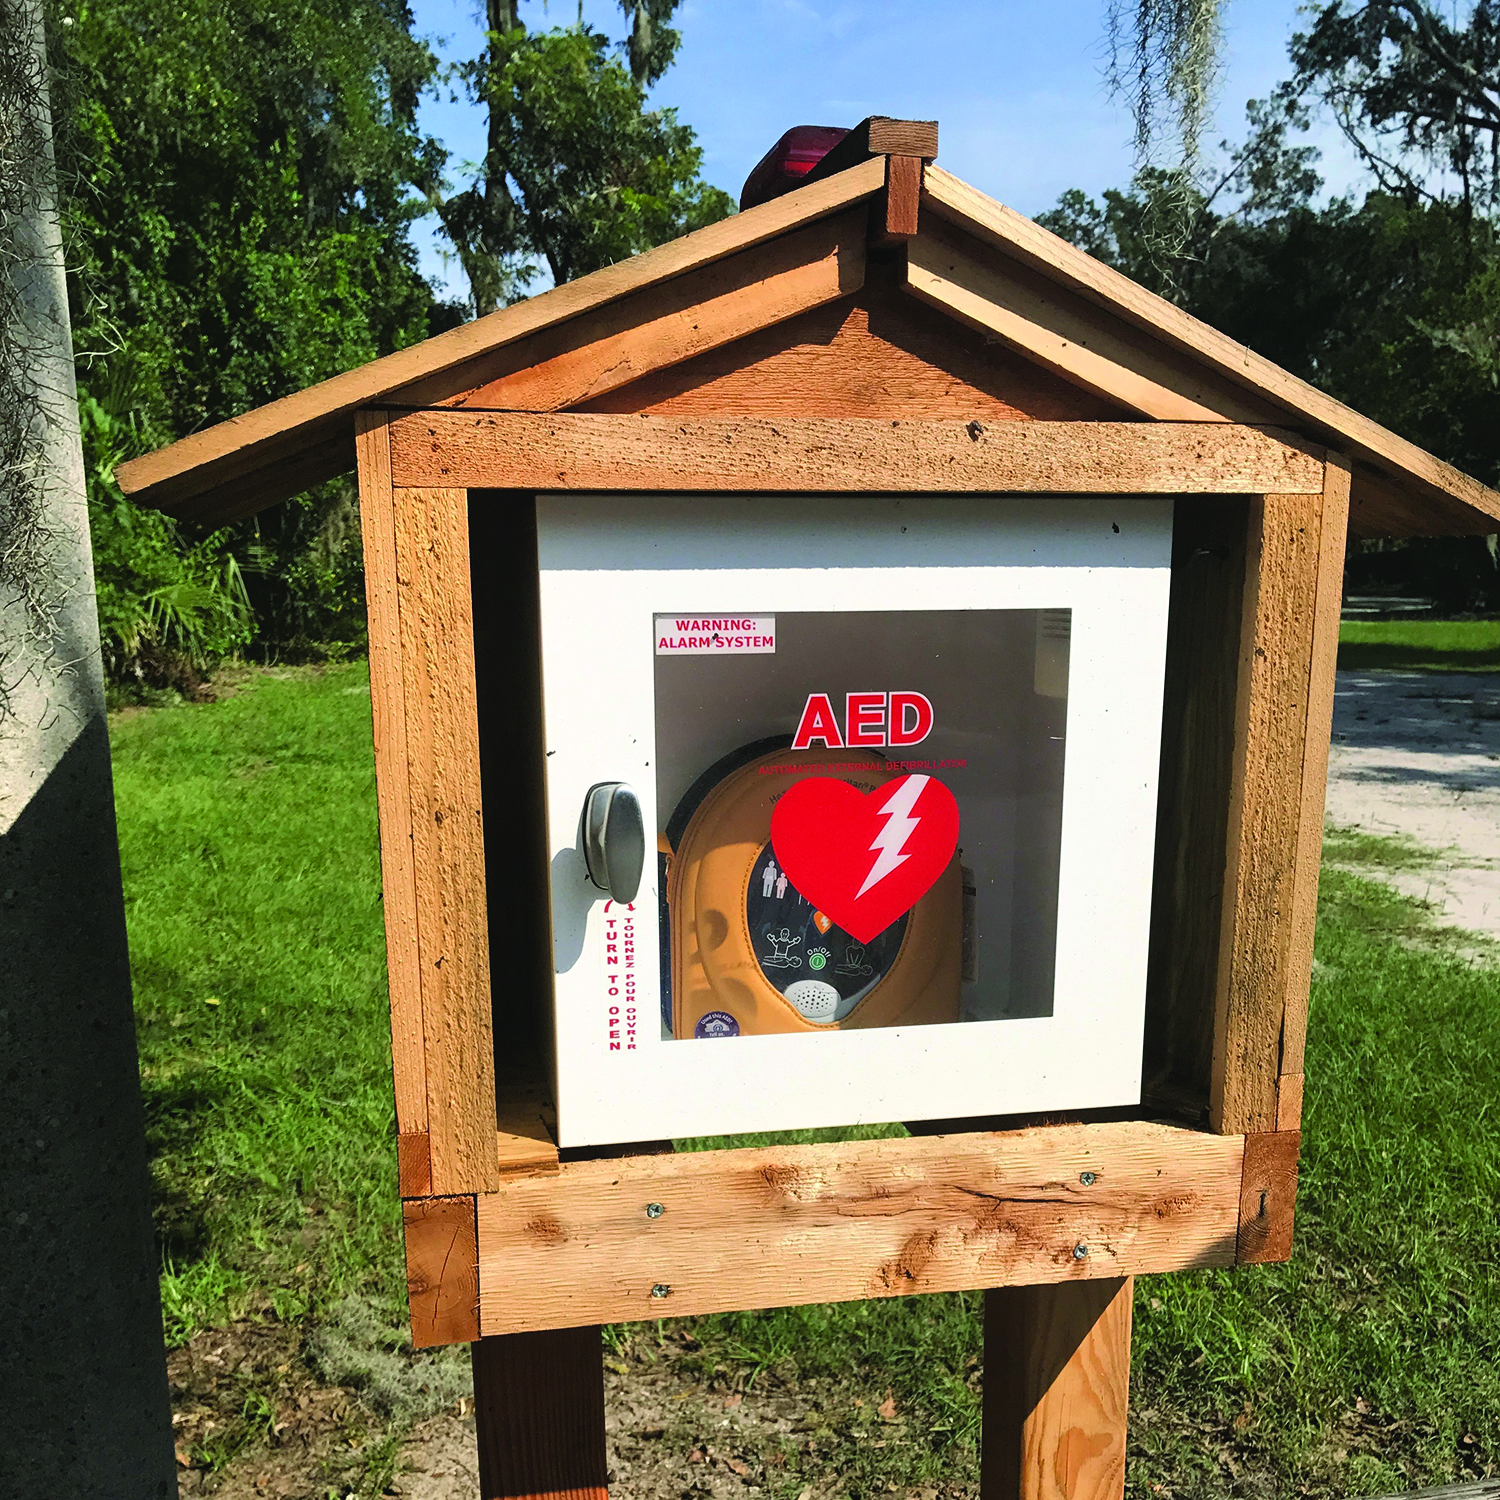 A stand-alone defibrillation station like this one, housing a public-use automated external defibrillator, was vandalized in Bluffton recently and the AED stolen. A fundraising campaign has been started to replace them. SUBMITTED